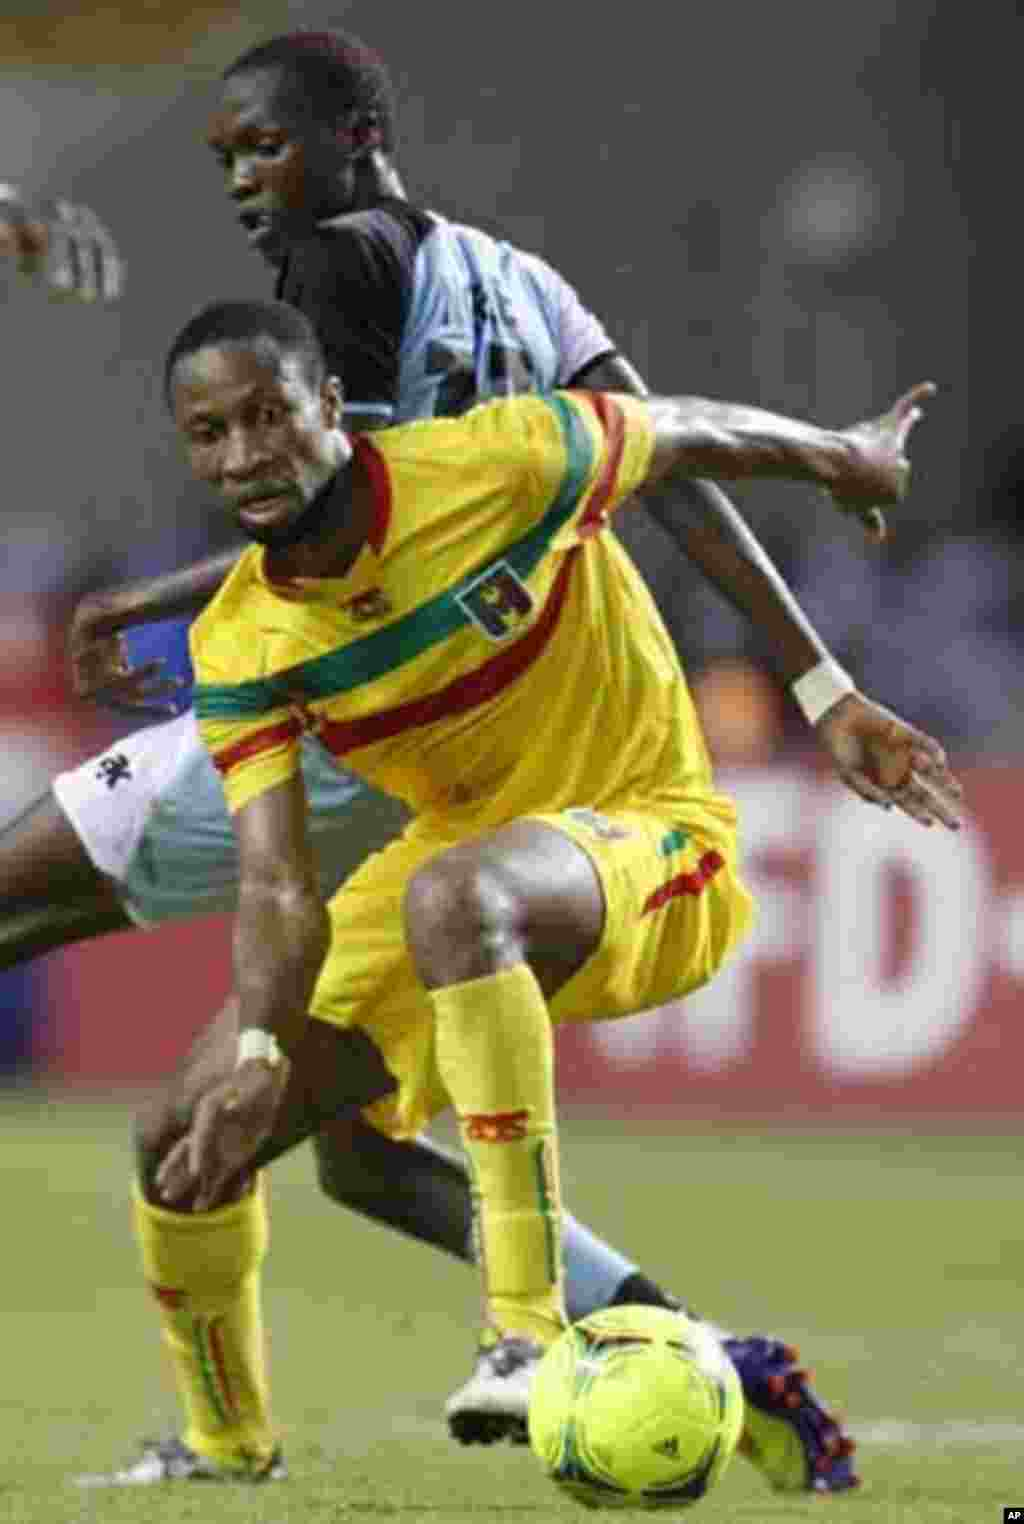 Mali's Seydou Keita (12) plays against Botswana's Mogakolodi Ngele during their final African Cup of Nations Group D soccer match at the Stade De L'Amitie Stadium in Libreville February 1, 2012.